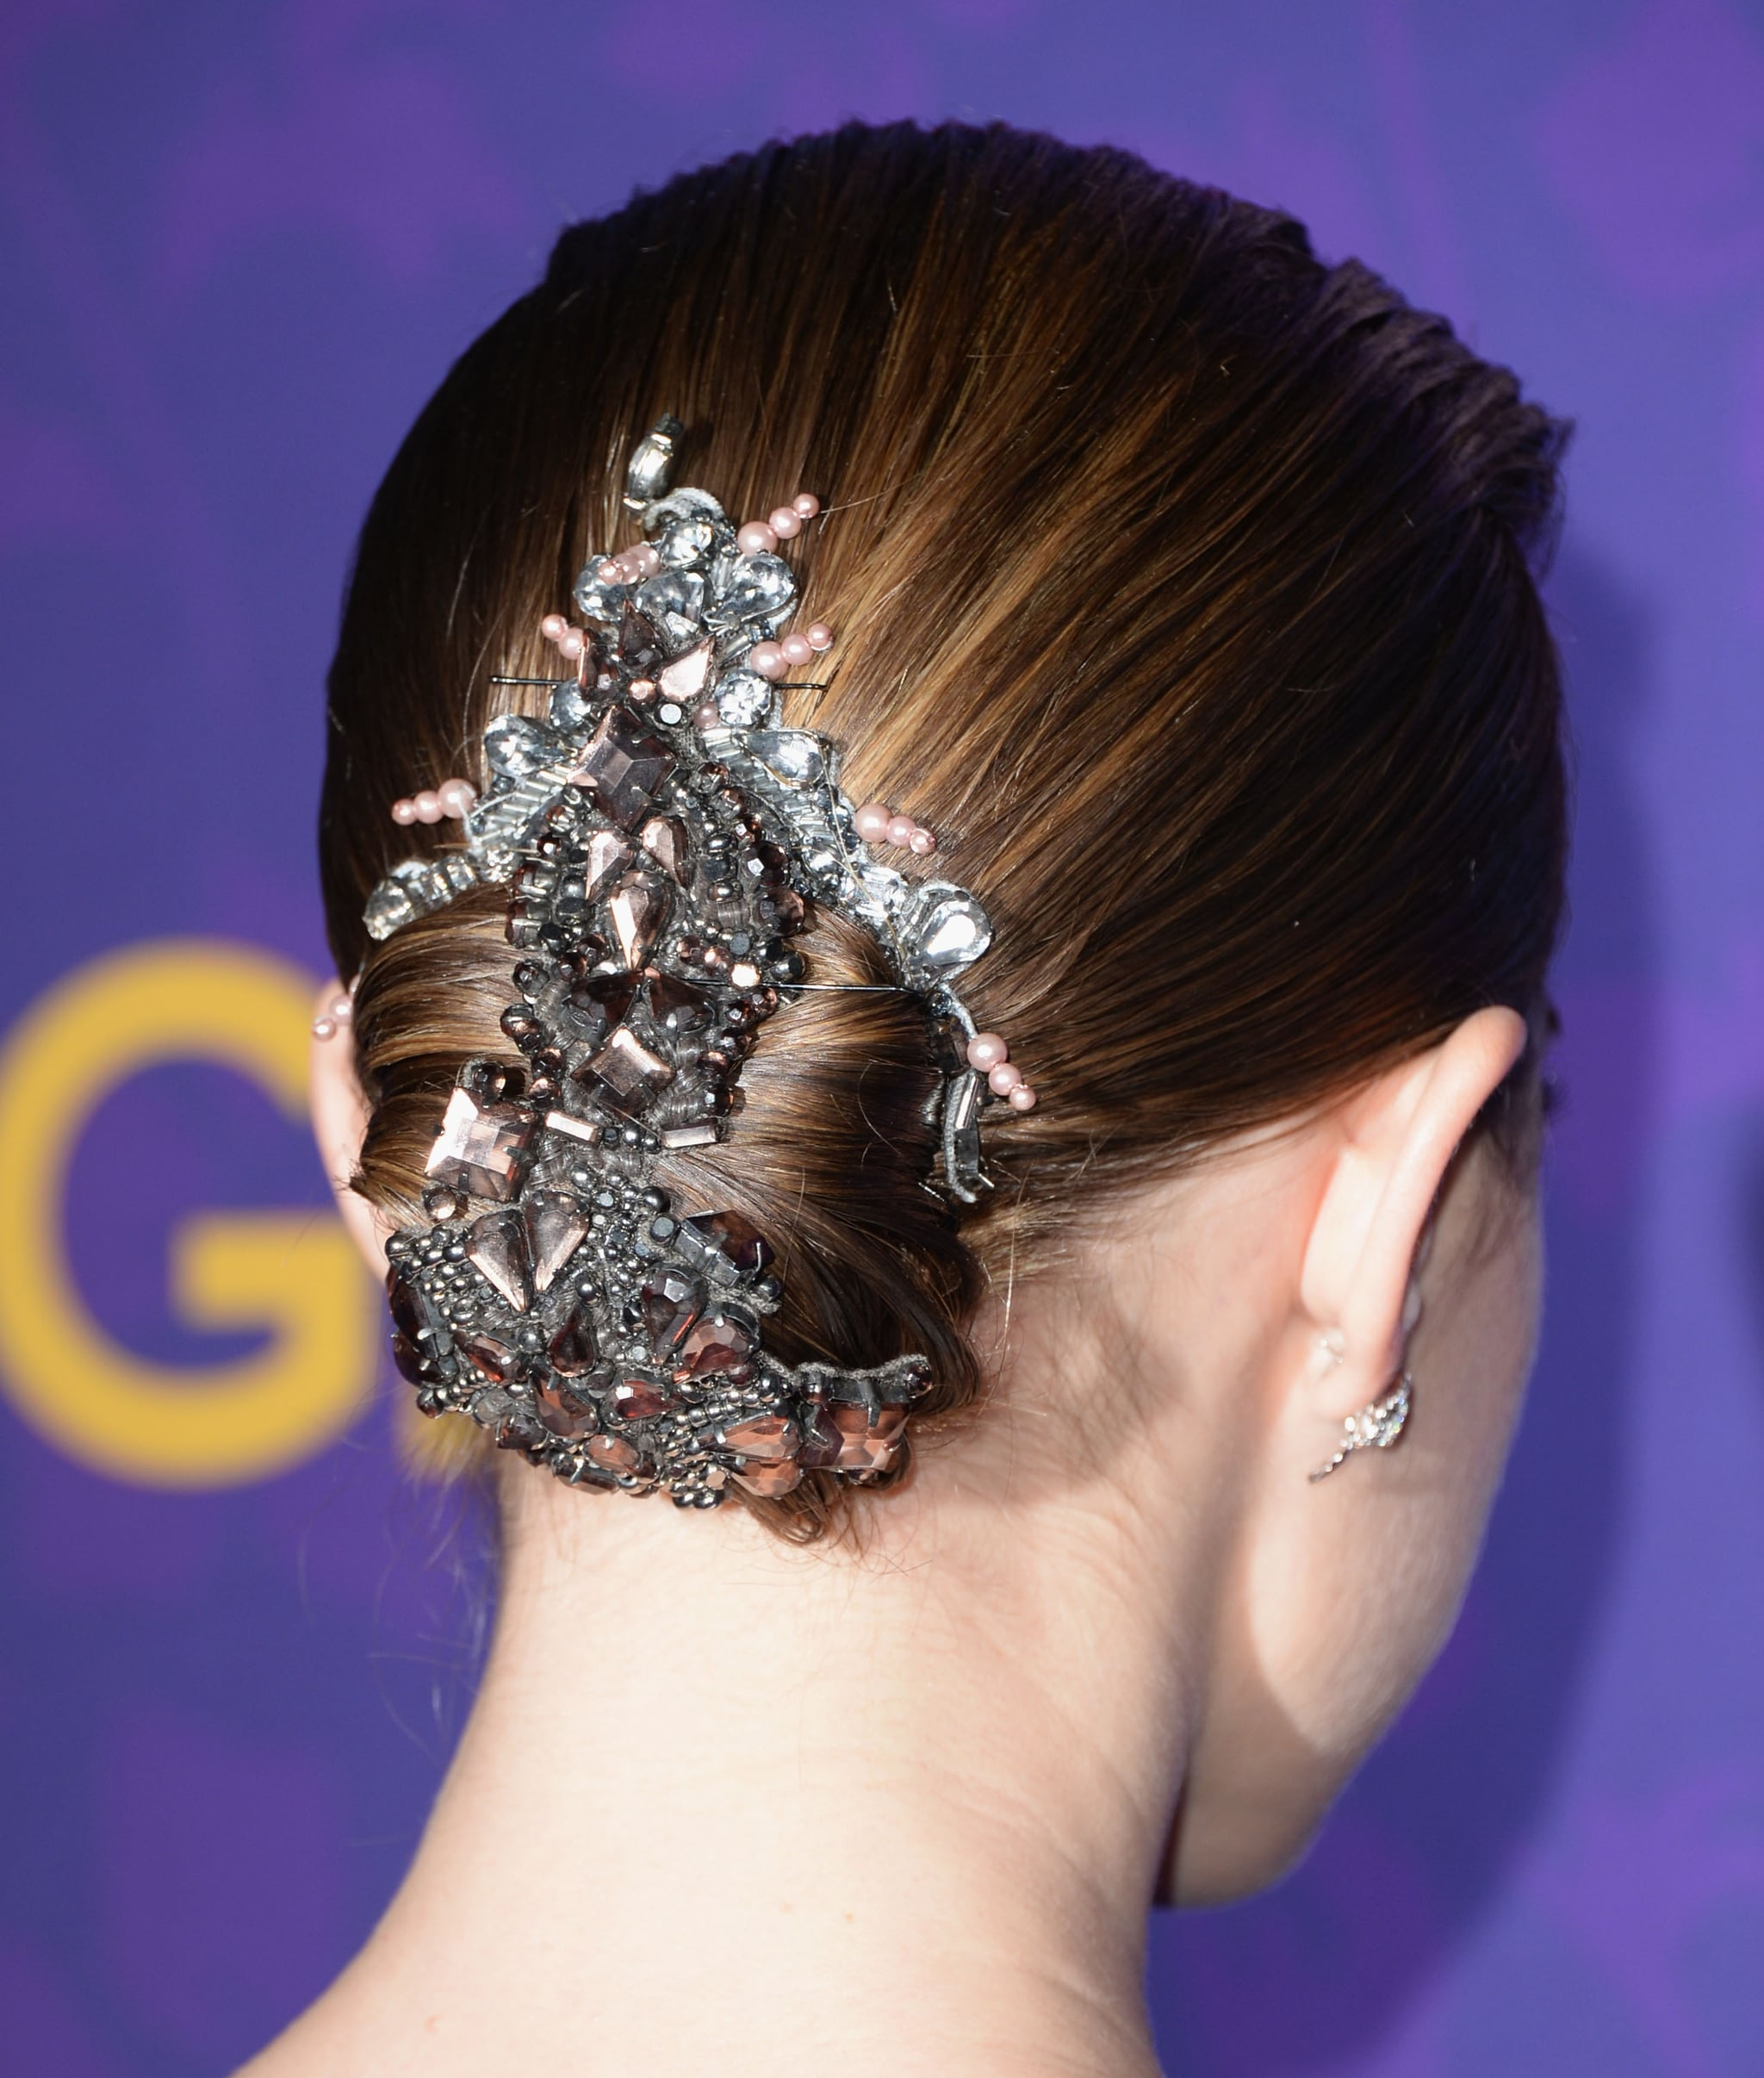 The real centerpiece of Allison's style of the night, however, was her hair. Slicked back into a low bun, her strands were adorned with an elaborate hair accessory with sparkling crystals and pink pearls.